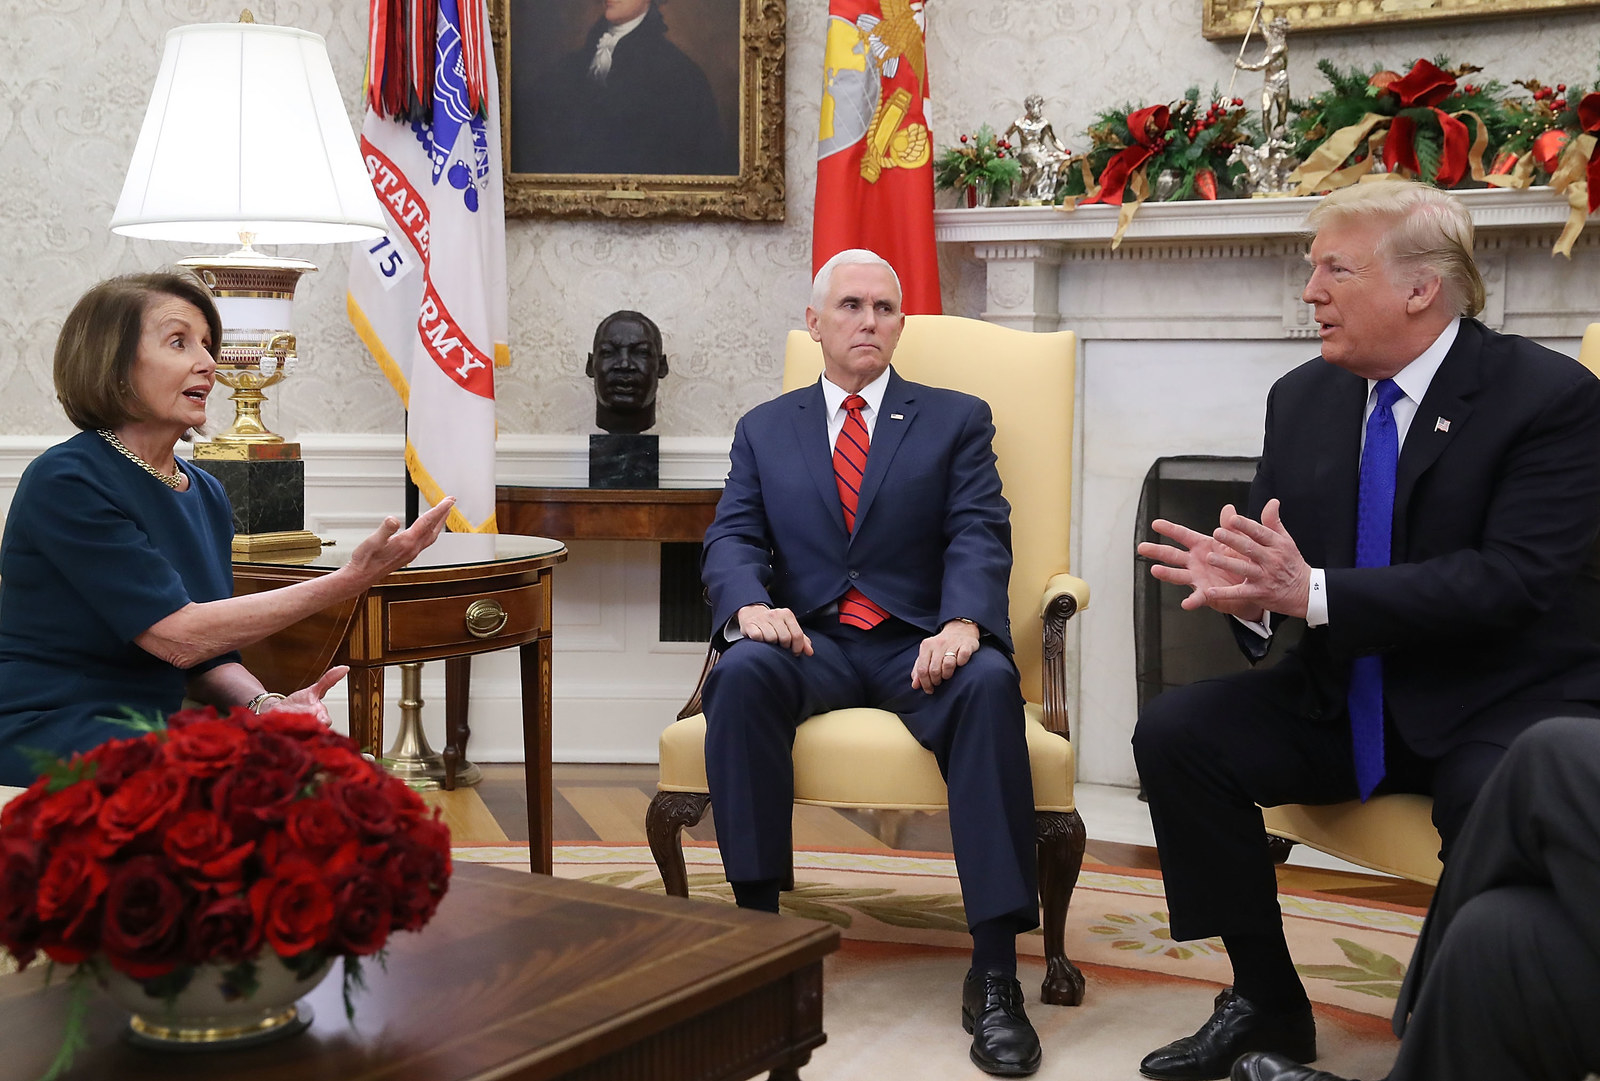 Trump argues about border security with Pelosi as Vice President Mike Pence sits nearby, just over a week before the shutdown began.